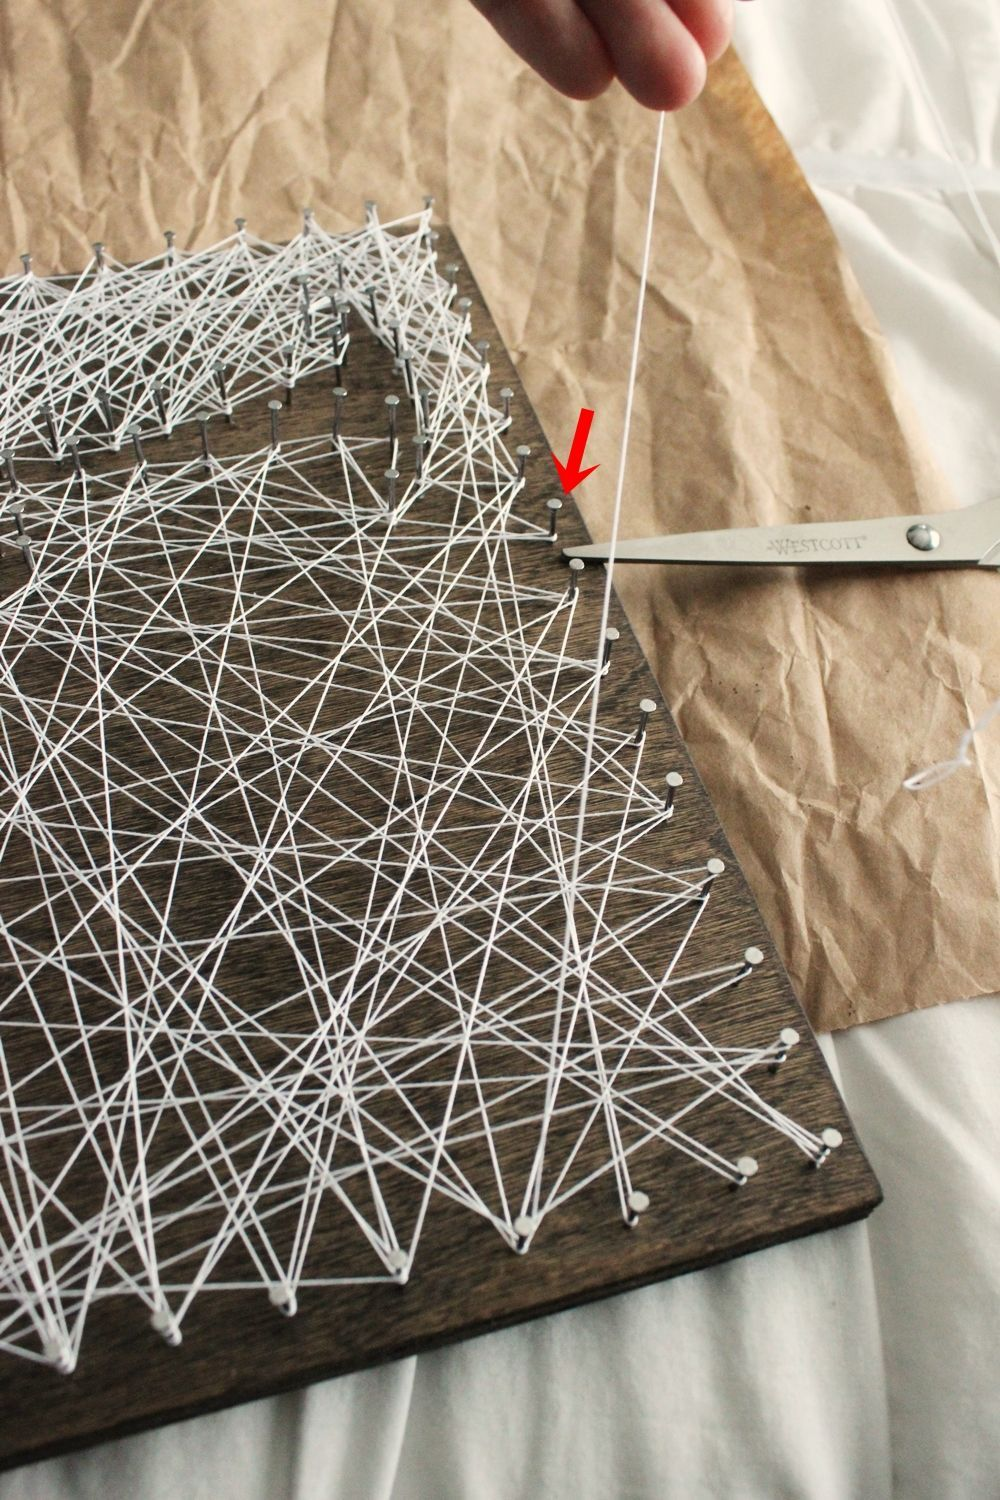 Diy String Art Tree Check Your Perimeter Nails